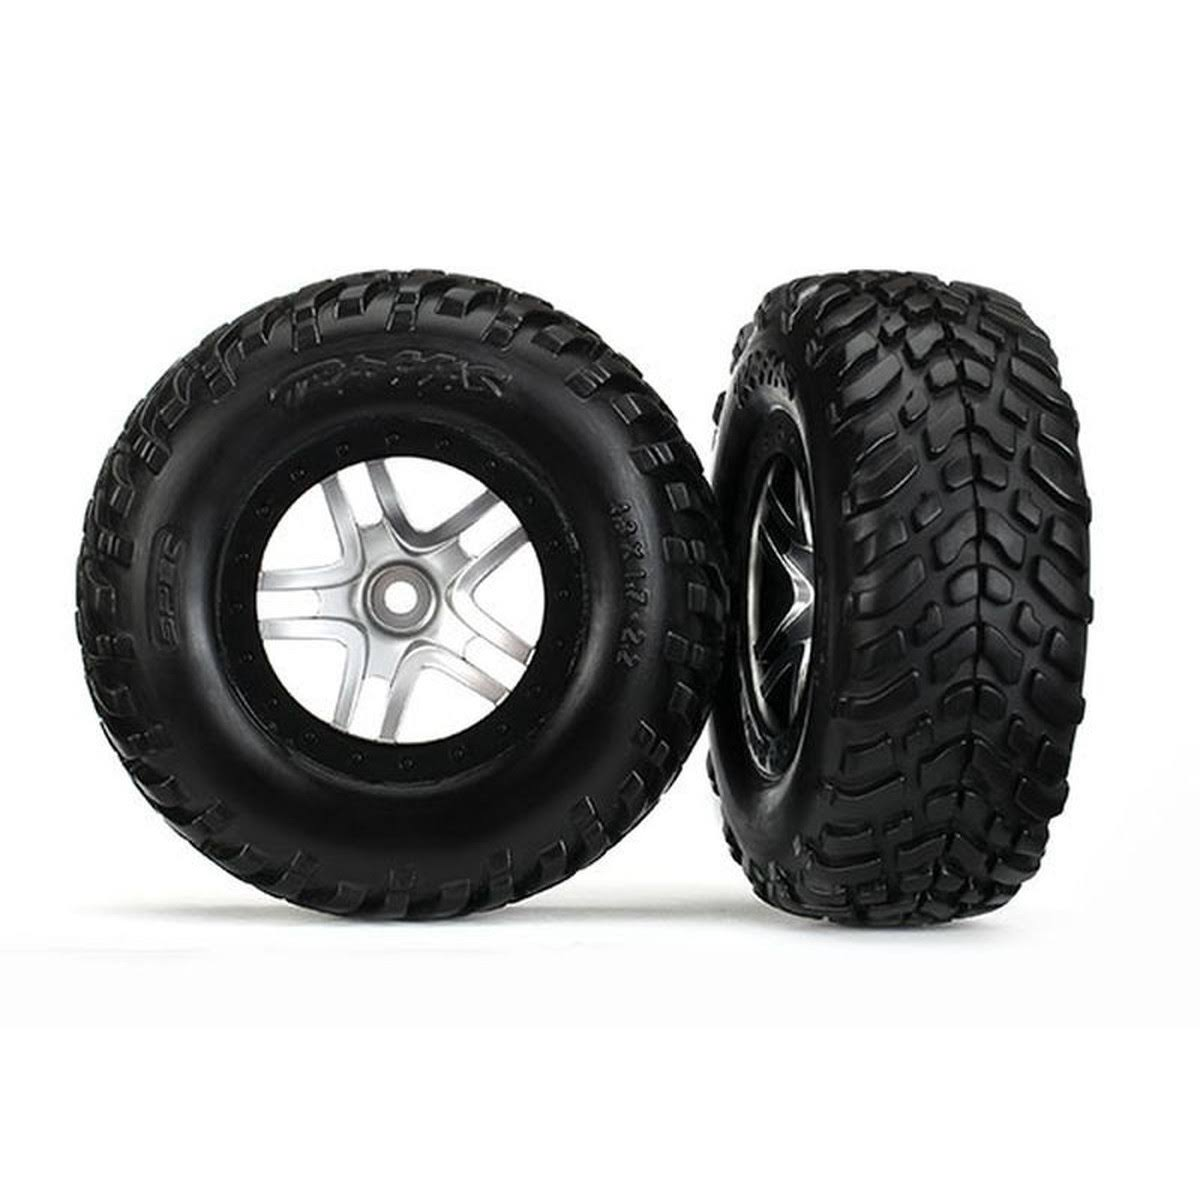 Traxxas 4WD/2WD Mounted SCT Tires & DP Wheels Black TRA6892R